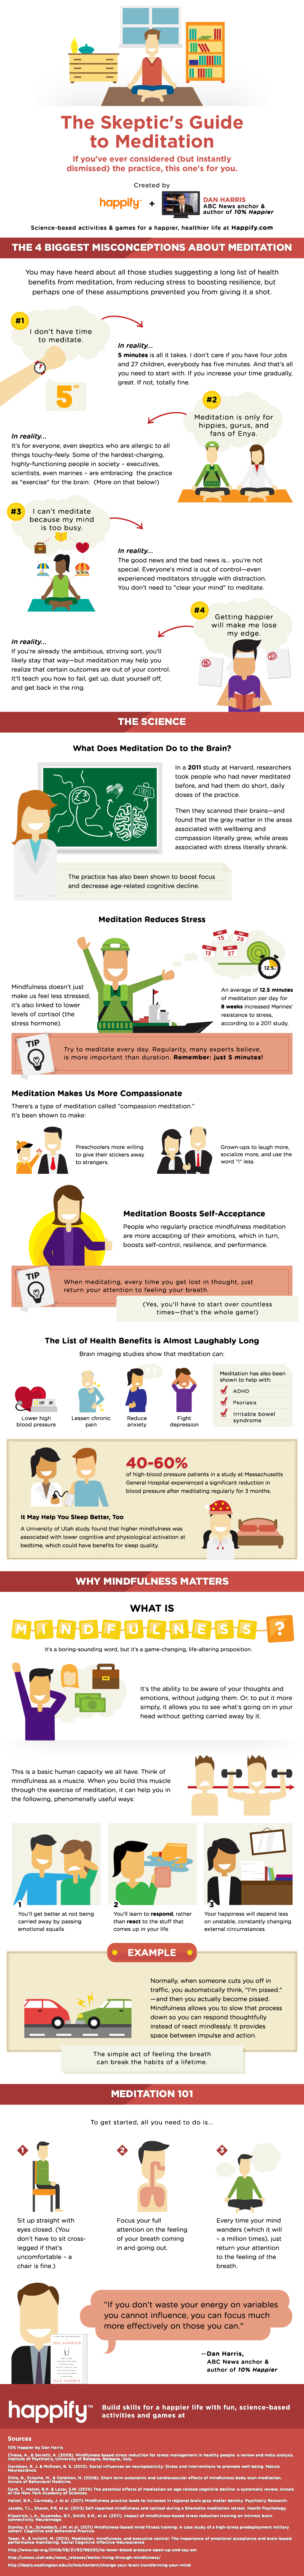 4 Misconceptions About Meditation Infographic